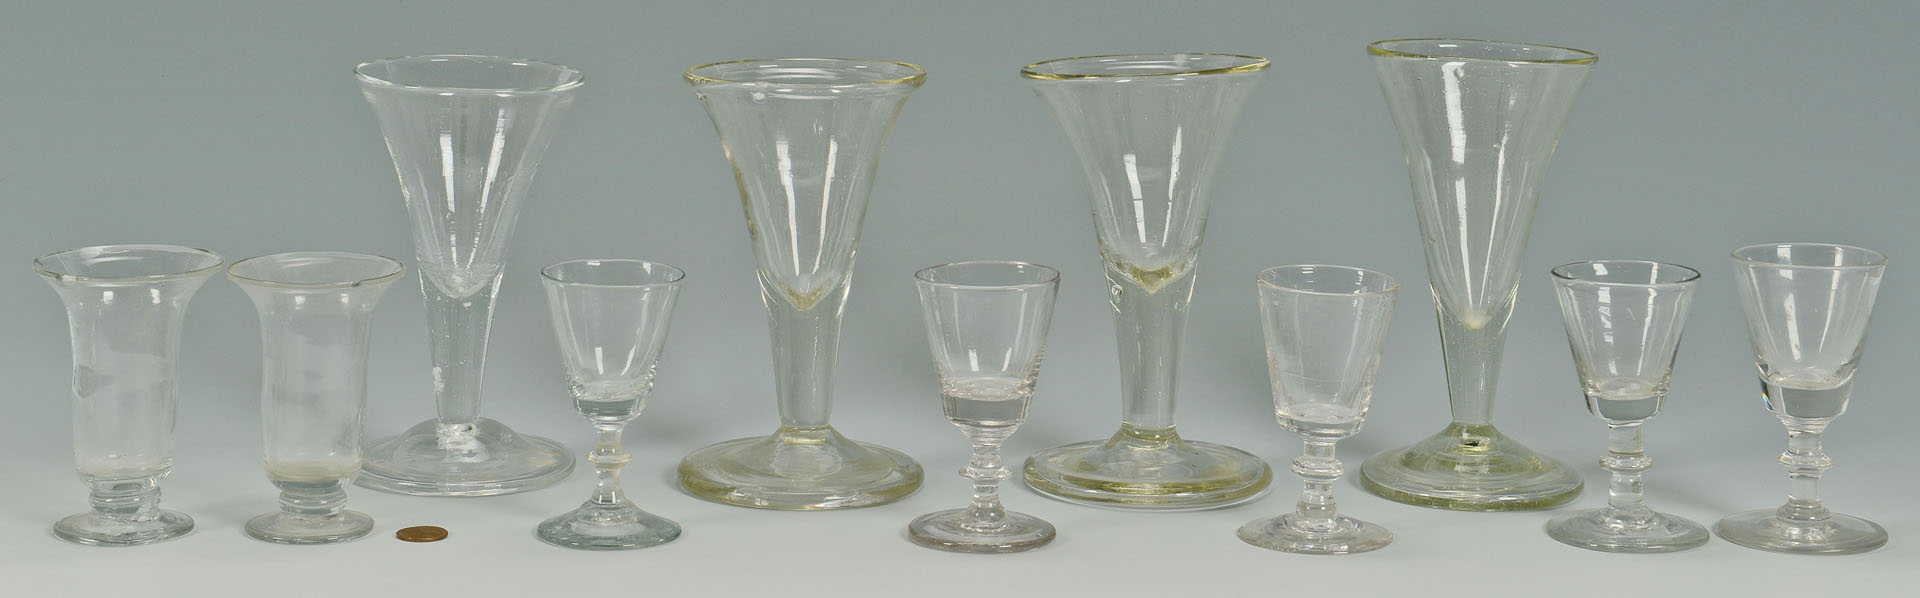 Early Blown Glass Drinking Vessels, 11 items